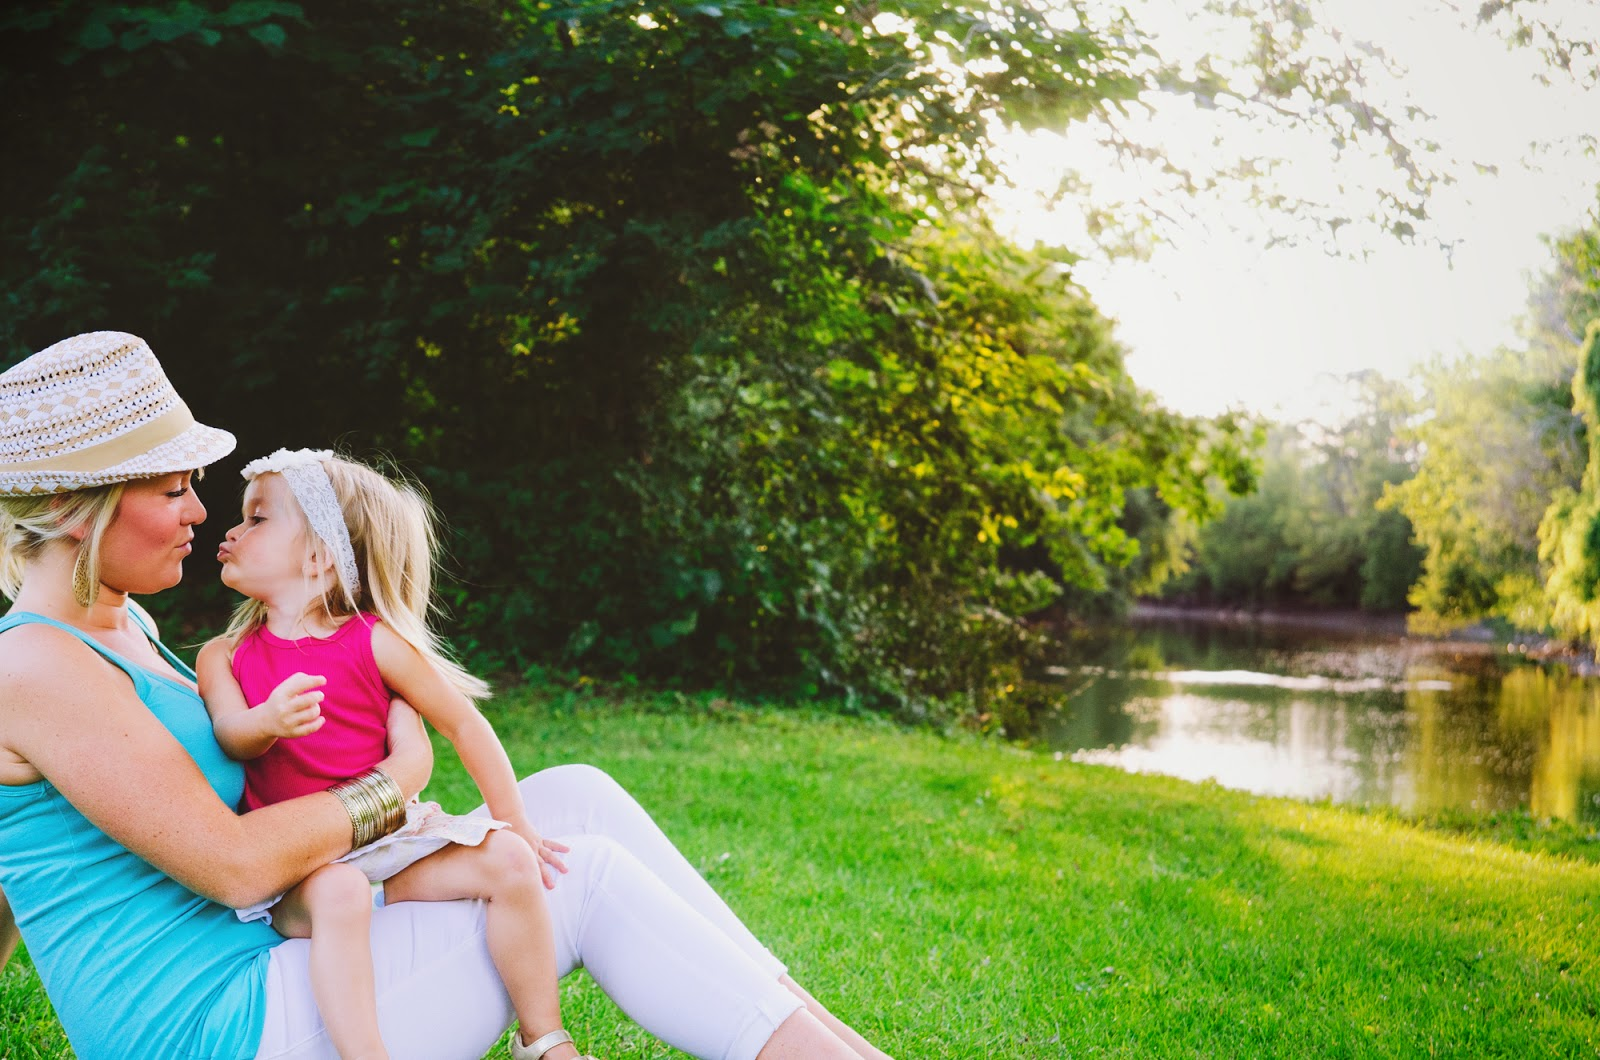 indianapolis family photographer captures mom and baby